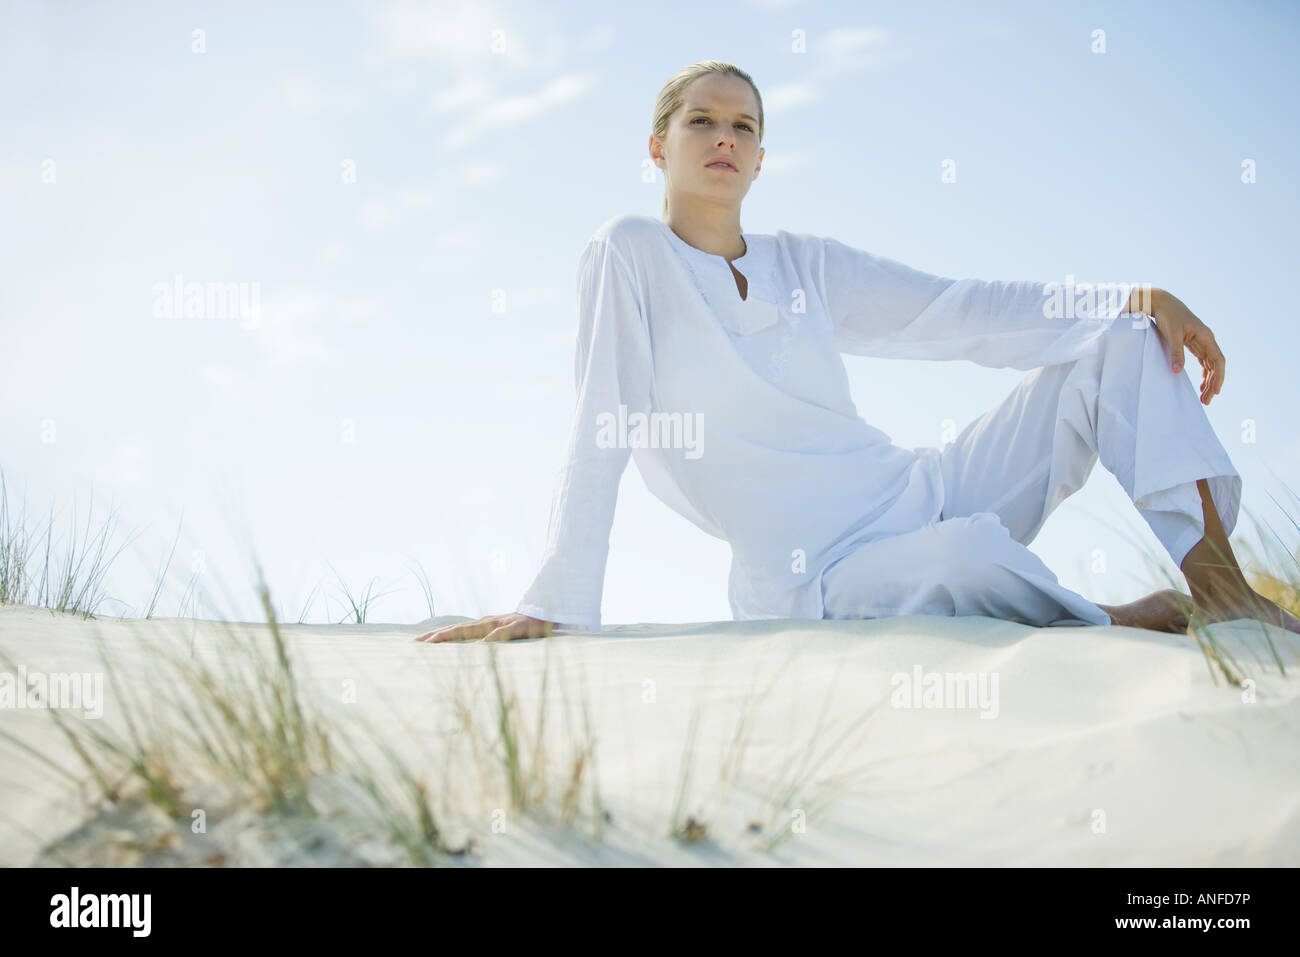 Young woman sitting on dune, low angle view - Stock Image